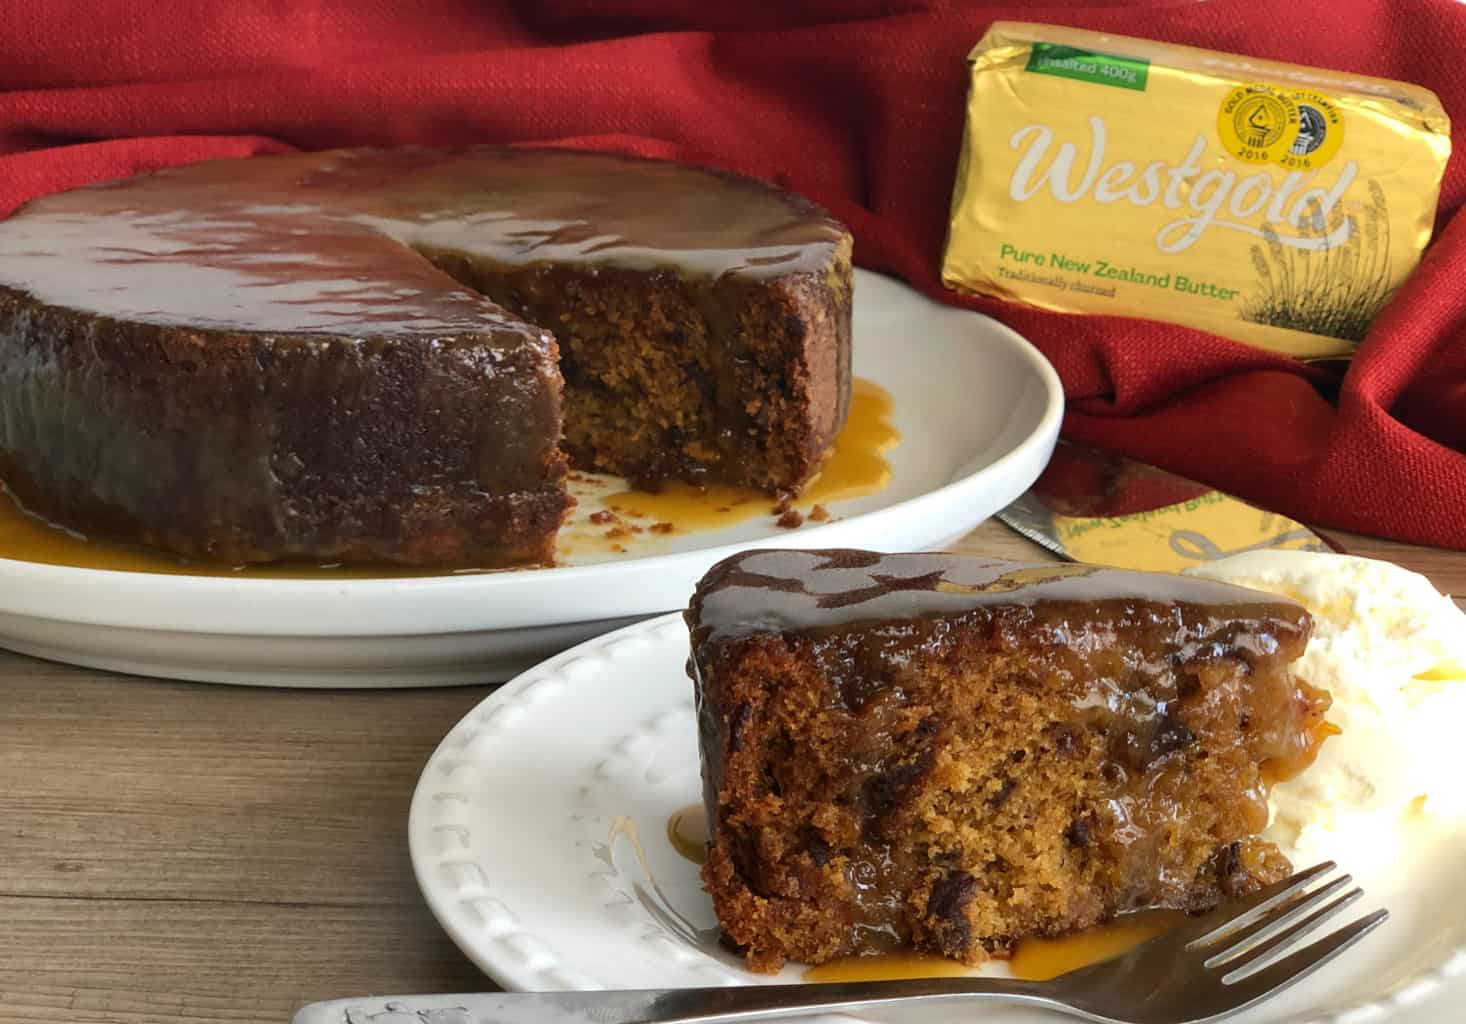 Slice of Sticky Date Pudding Served with Butterscotch Pudding